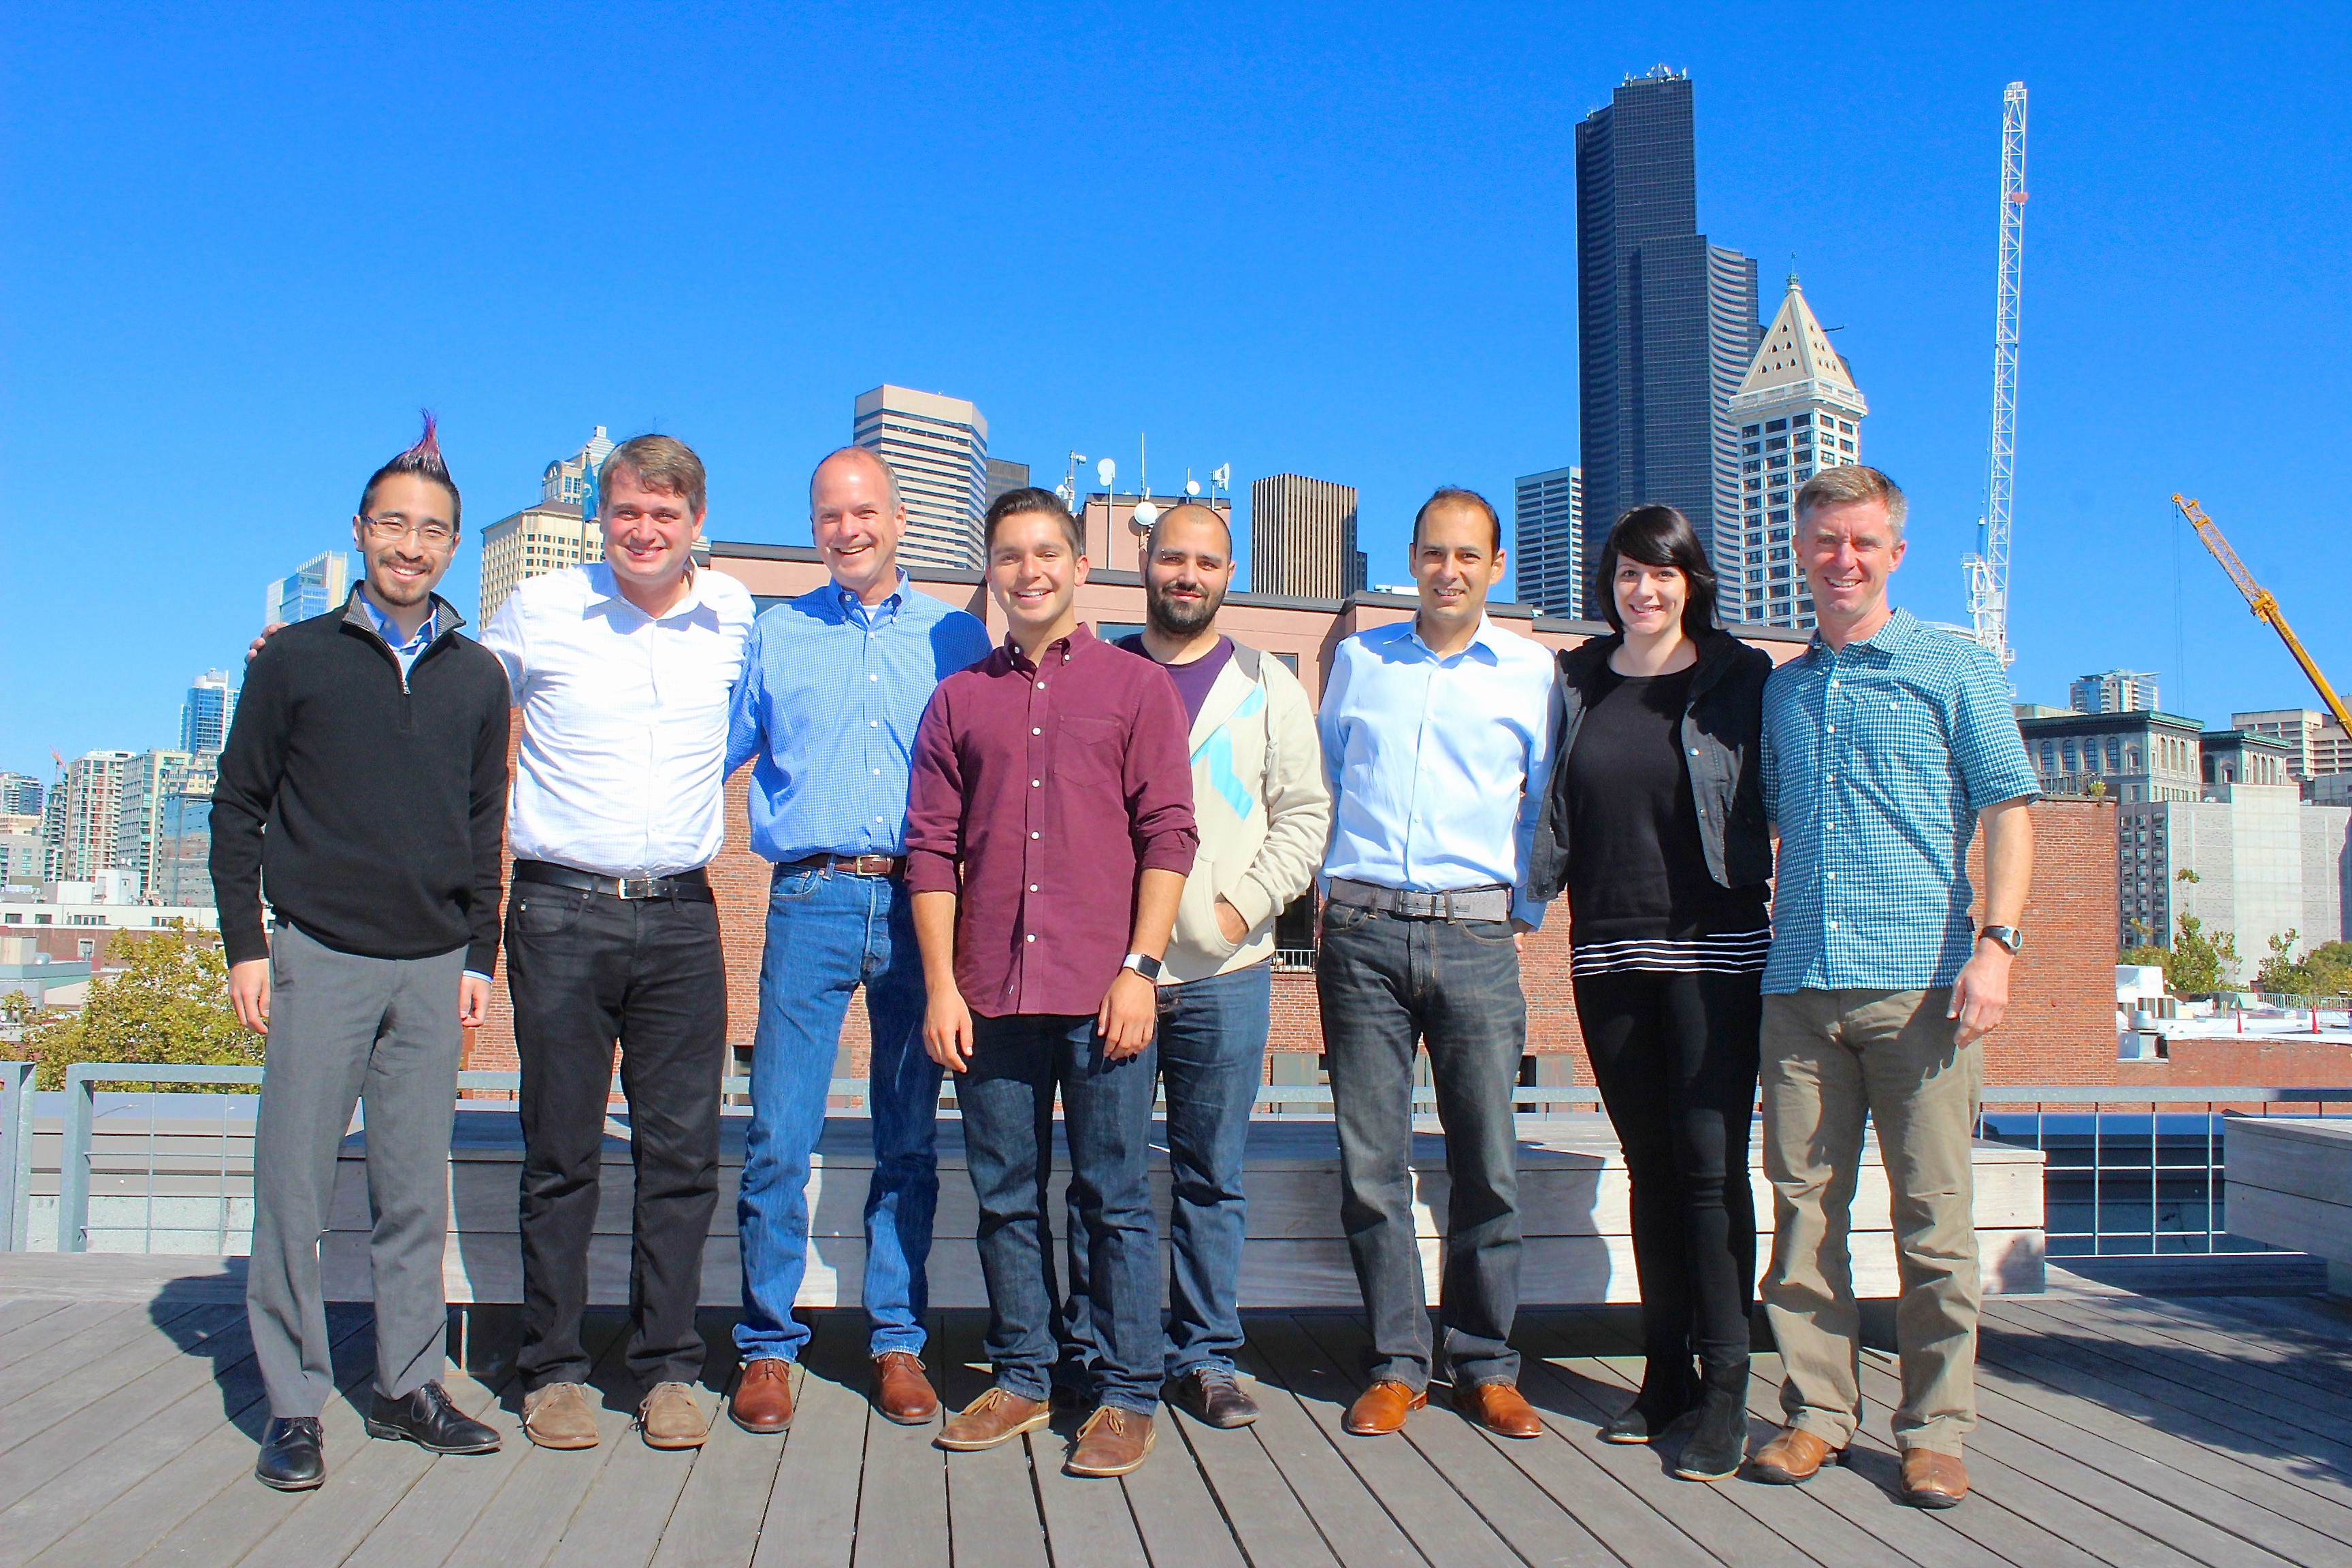 Greg Gottesman and Geoff Entress lead Pioneer Square labs